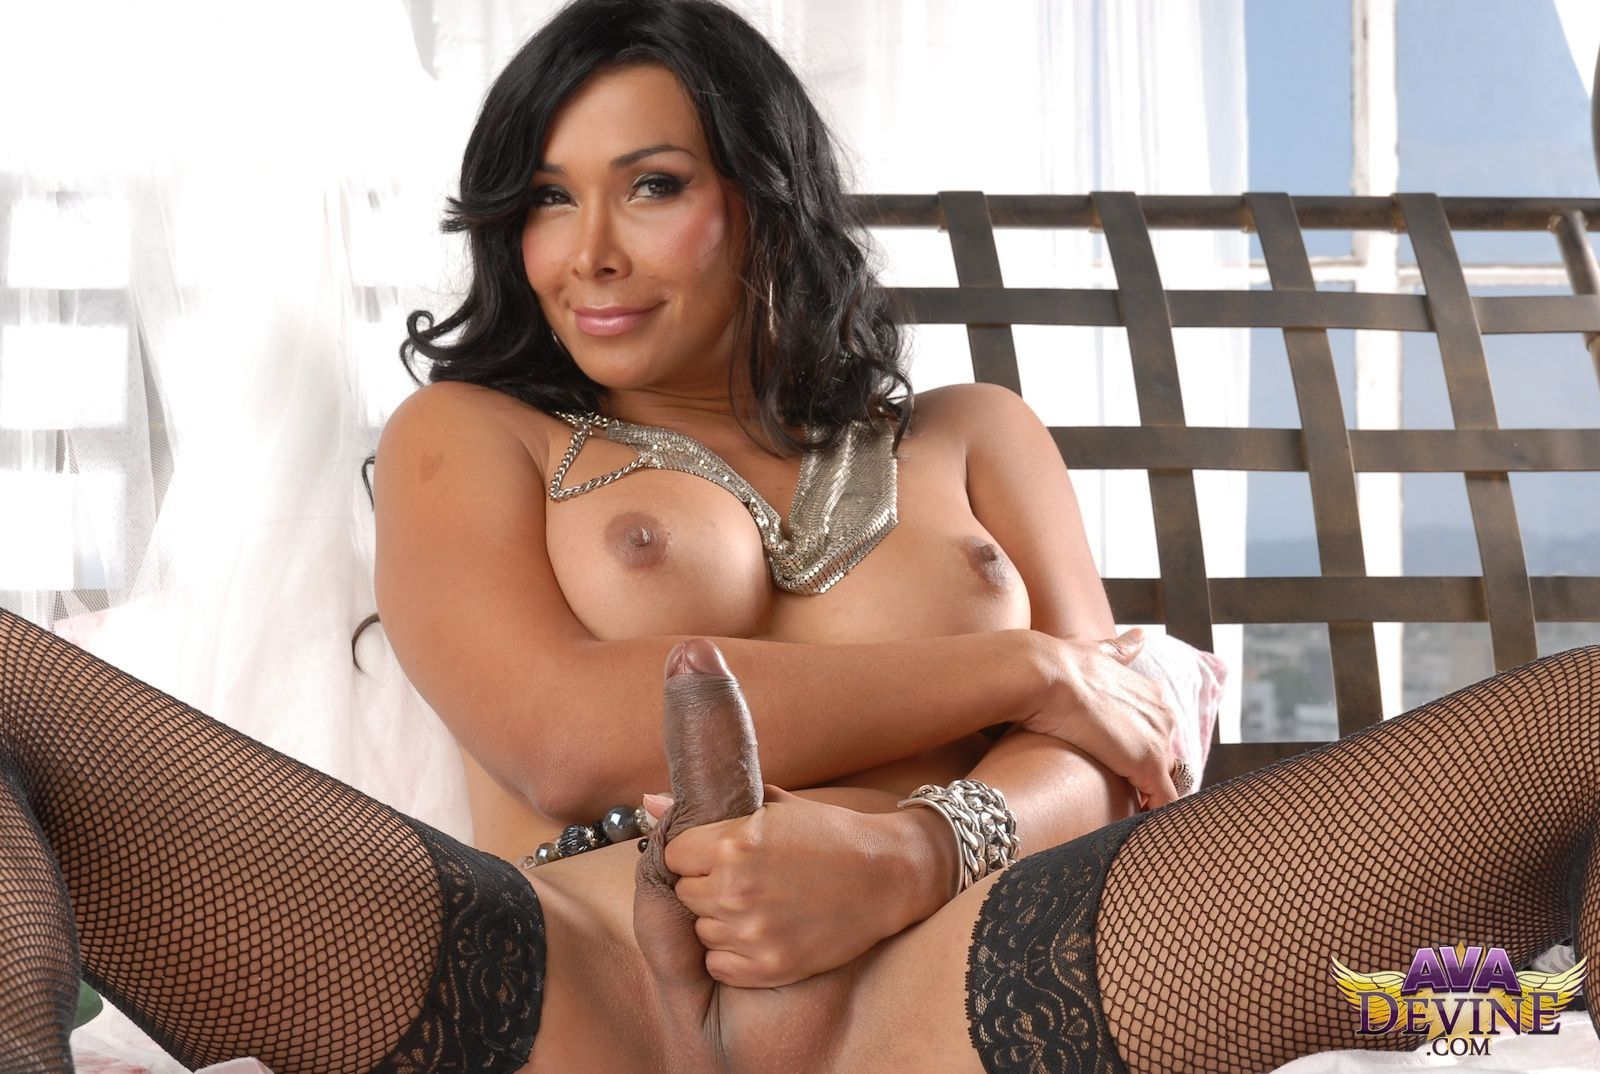 Tranny pornstar vanity free videos - XXX Sex Images. Comments: 3